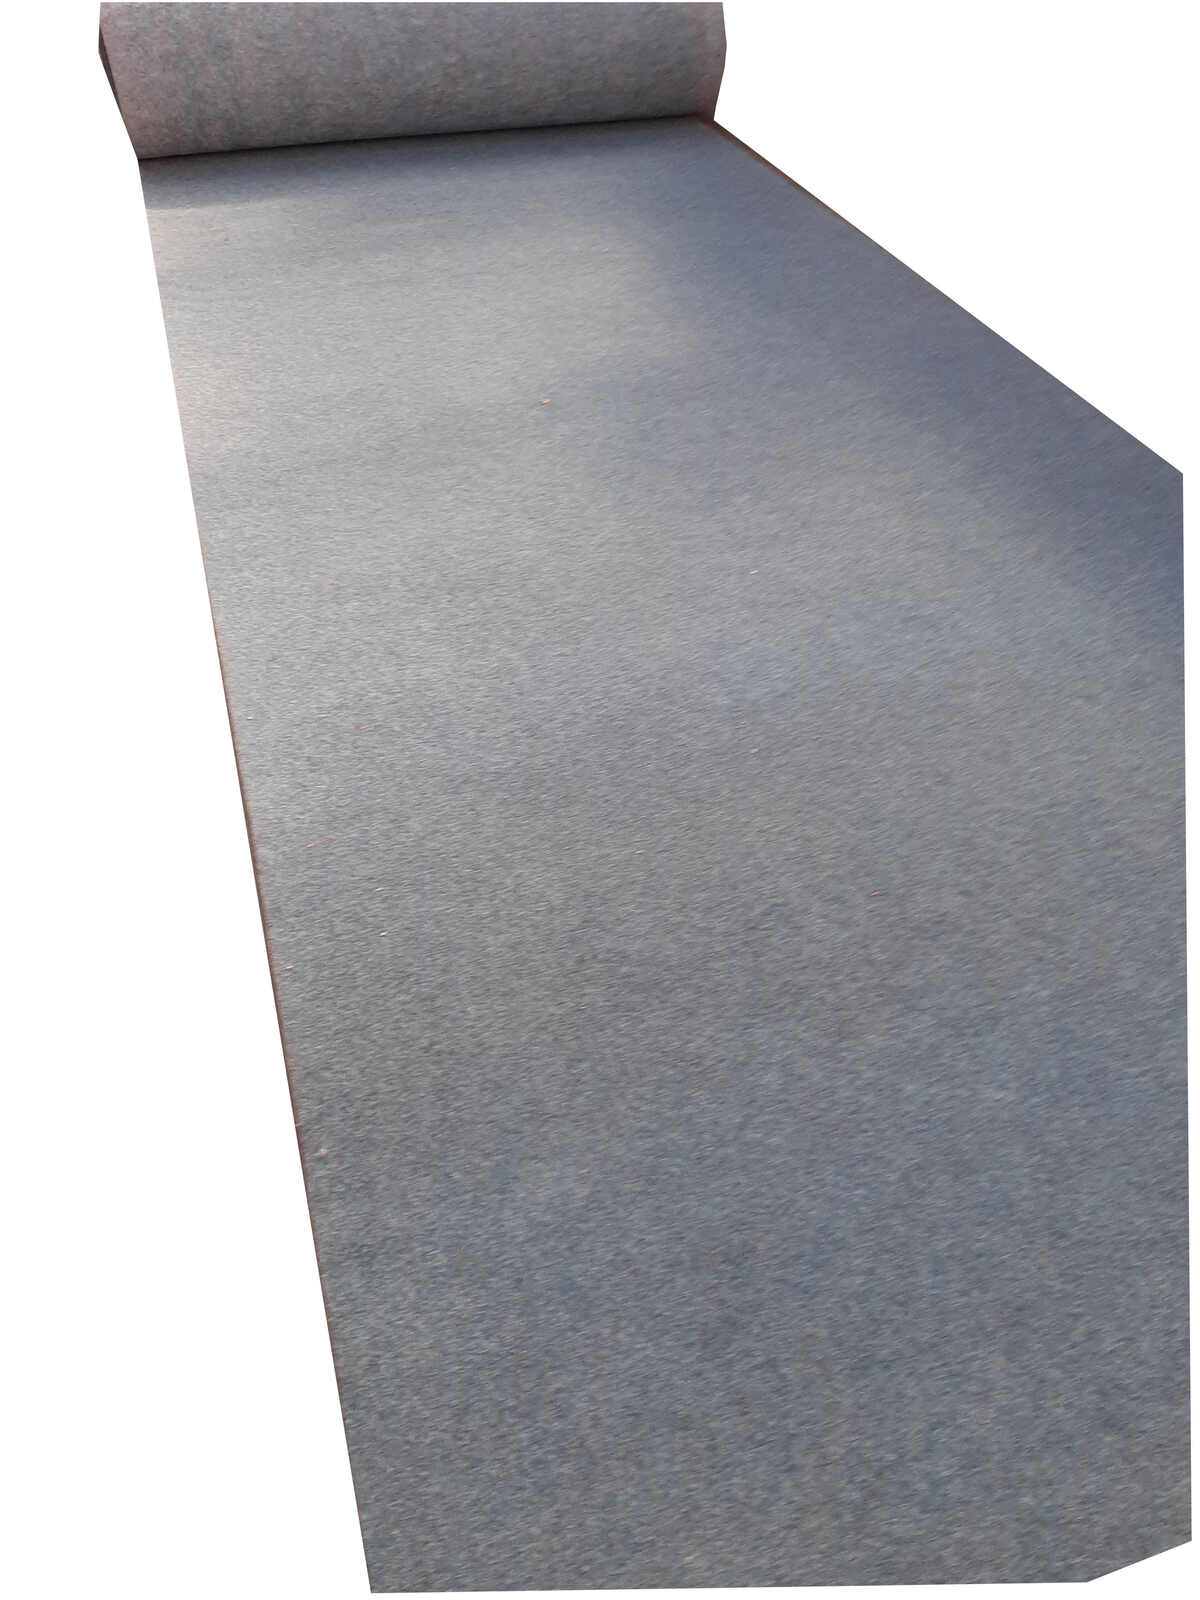 Suntex Outdoor Carpet 180cm Wide Specifier Heather Blue